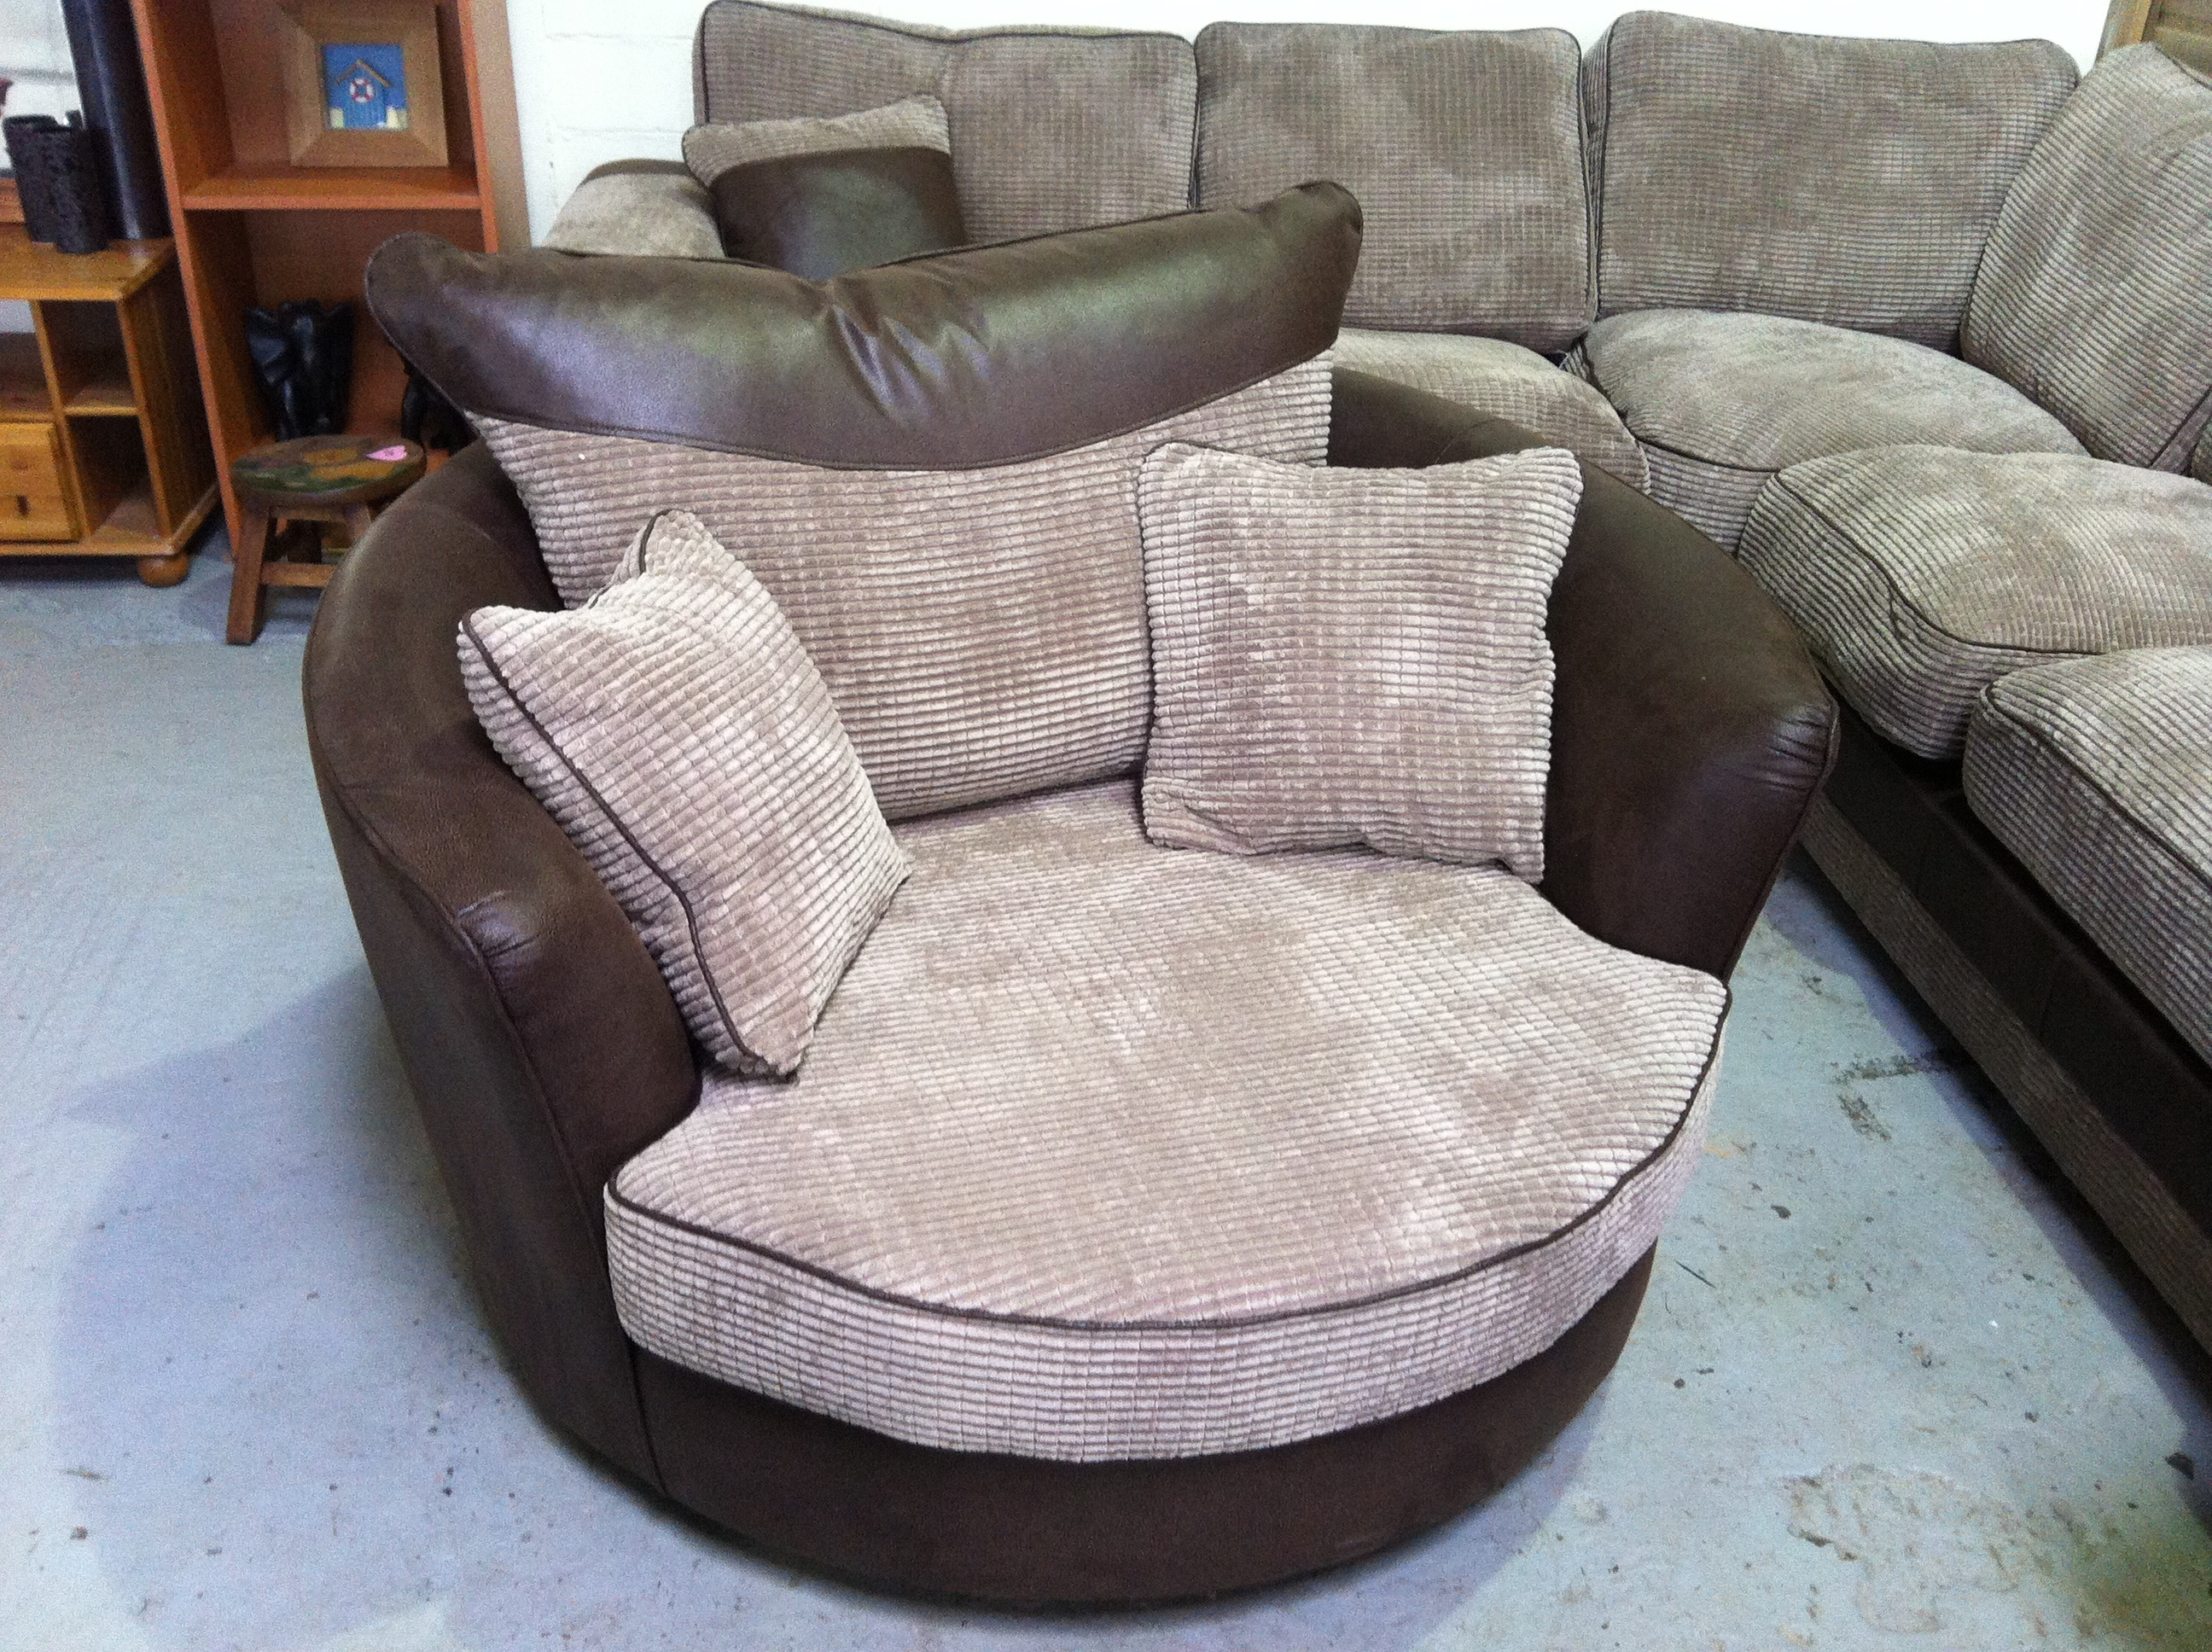 Sofas Center Swivel Sofa Chair And Setround Chairsofa Set Round Pertaining To Spinning Sofa Chairs (View 3 of 15)